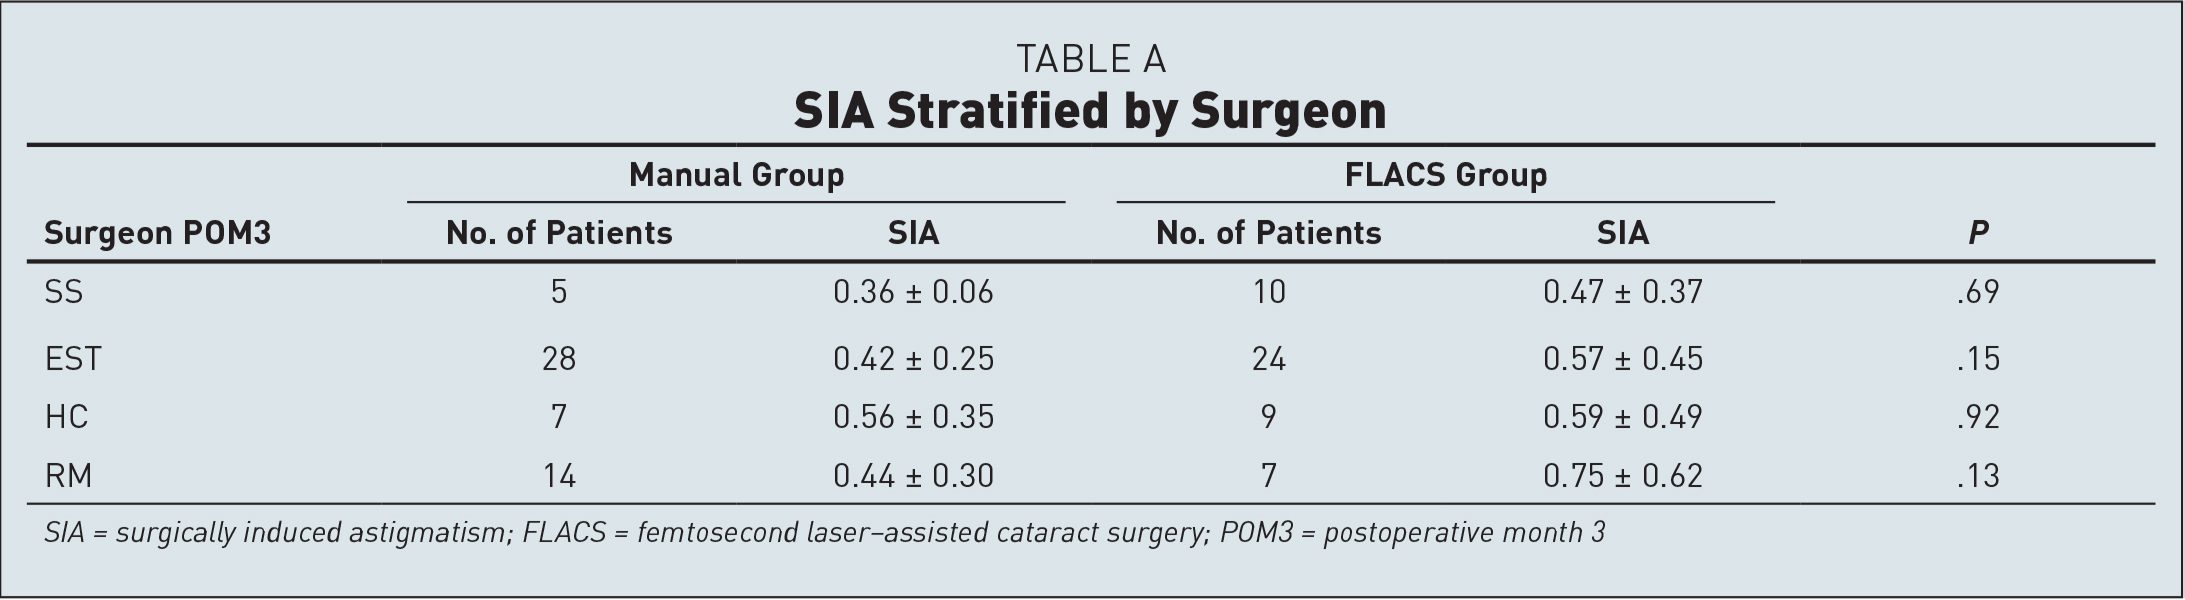 SIA Stratified by Surgeon